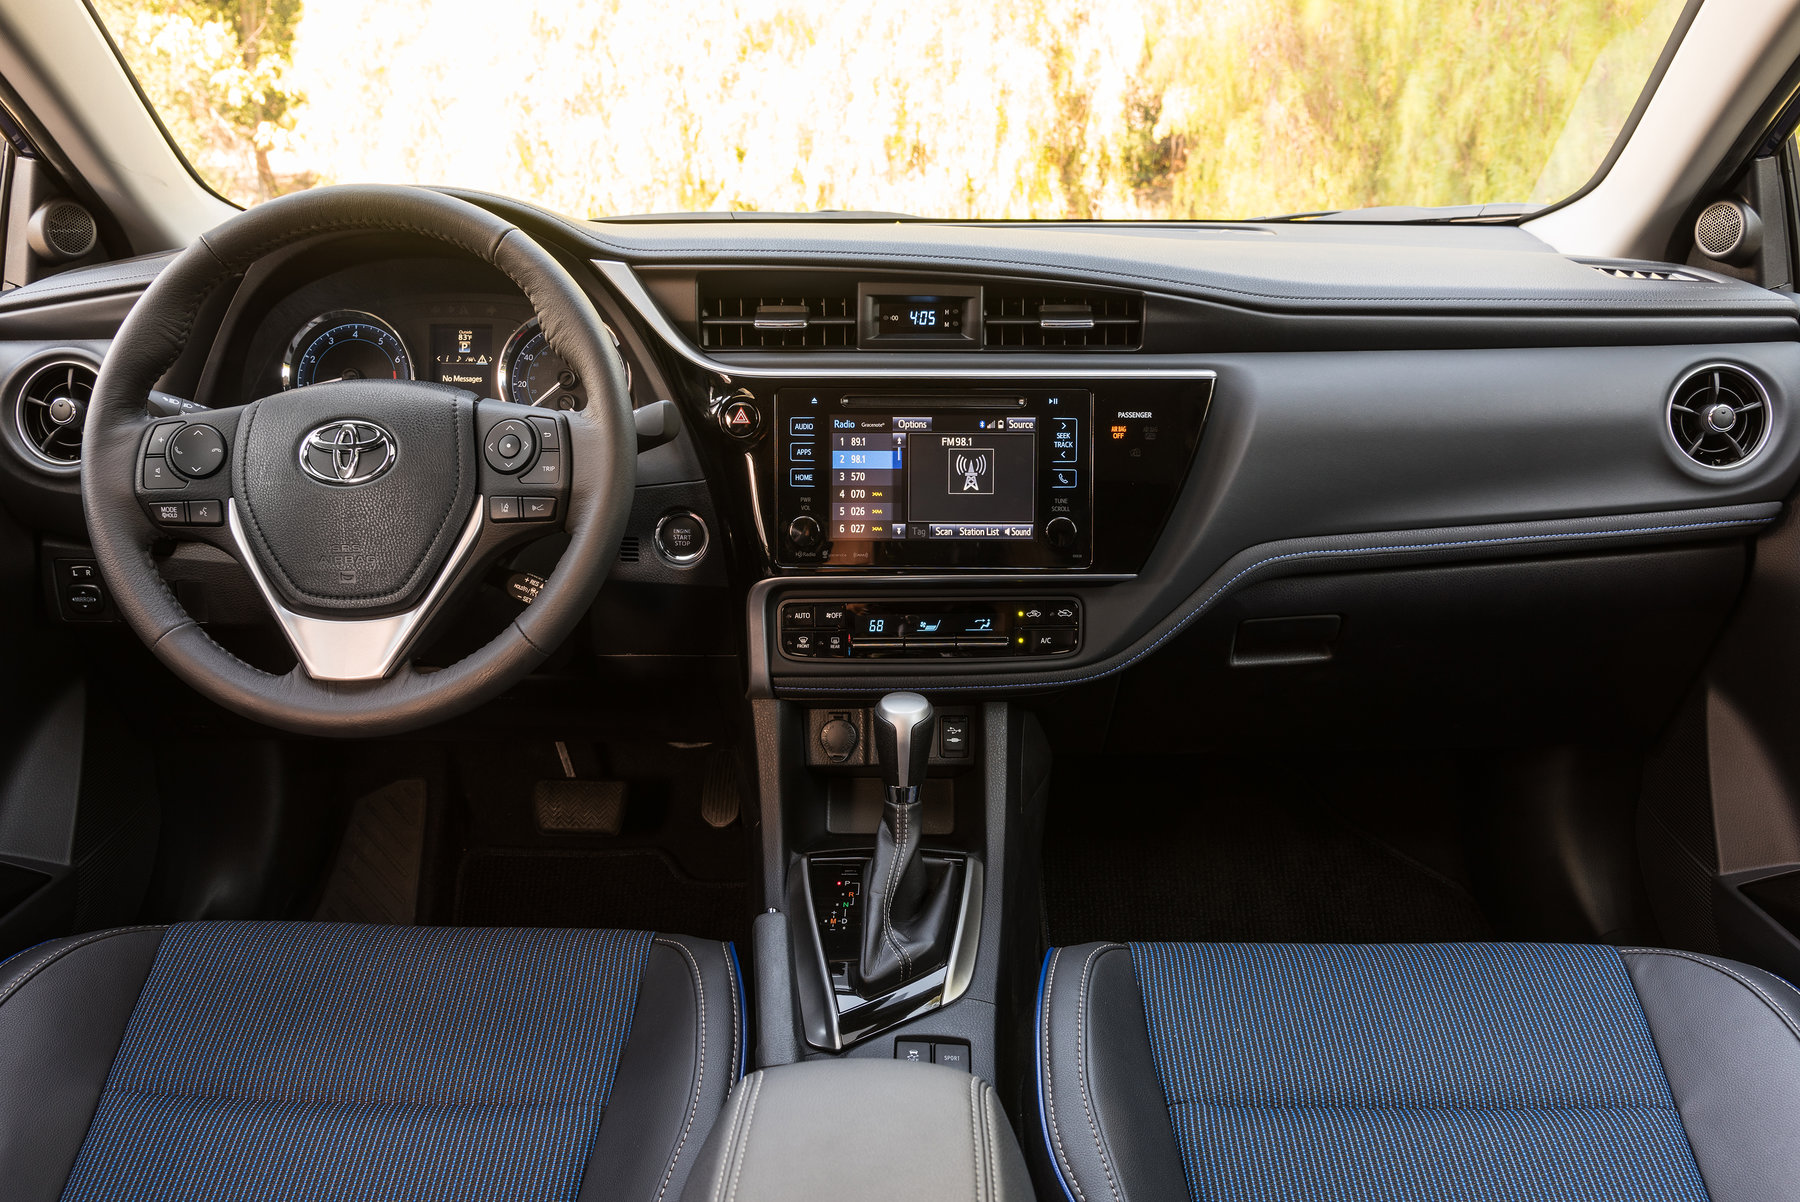 Inside The 2017 Corolla Is Stylish And Welcoming First Thing You Ll Notice A Fluid Dashboard That Creates Continuous Line From Each Side Of